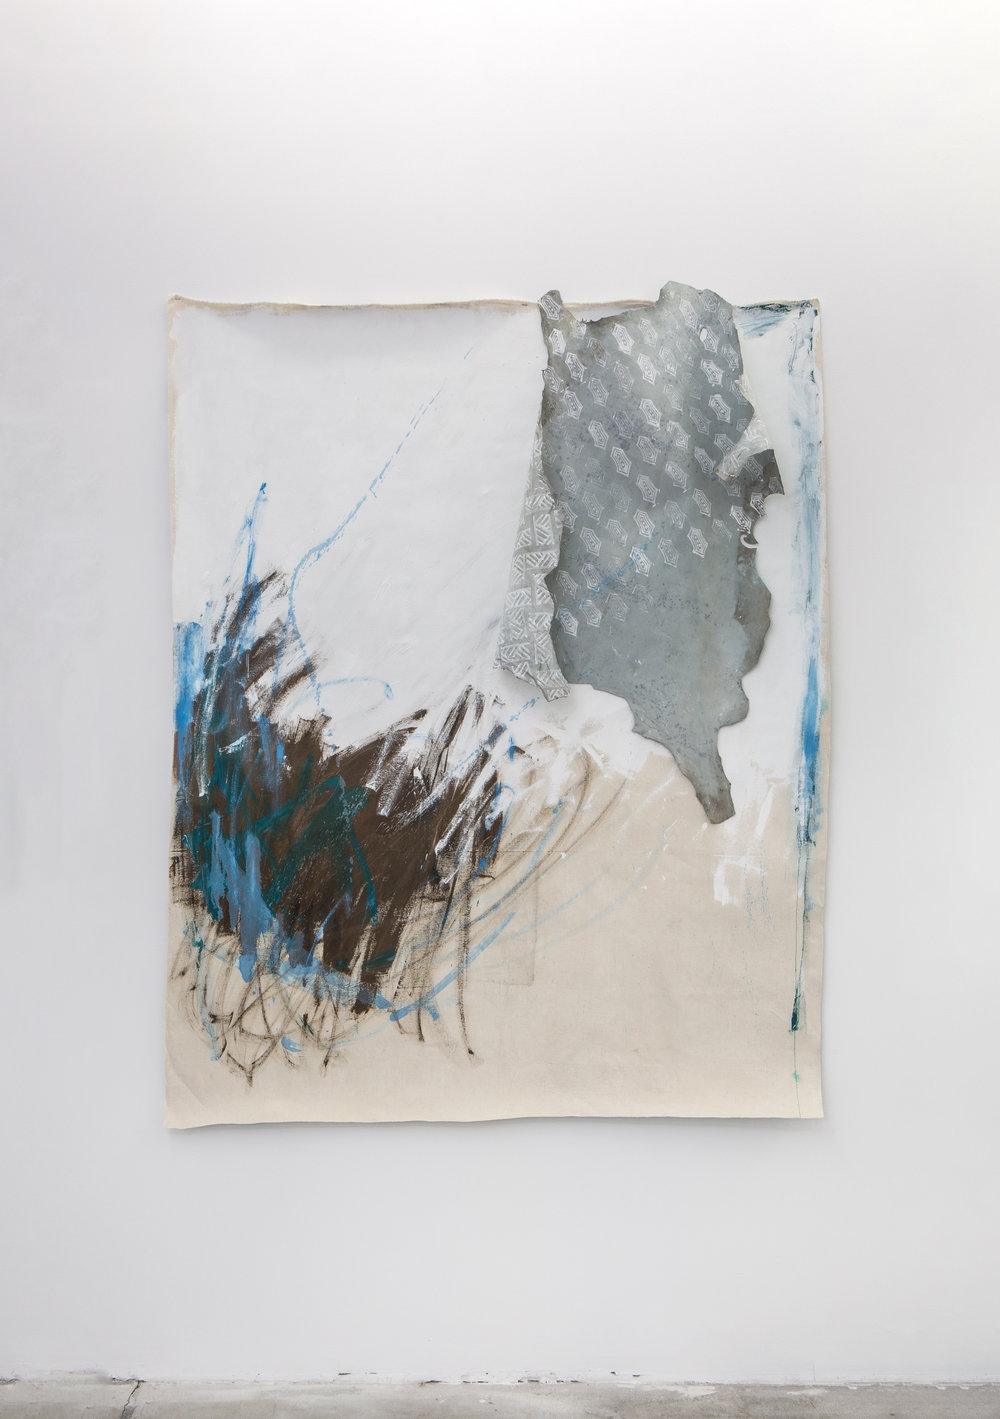 Marina 3 , 2018, oil on printed canvas and leather, 190 x 150 cm